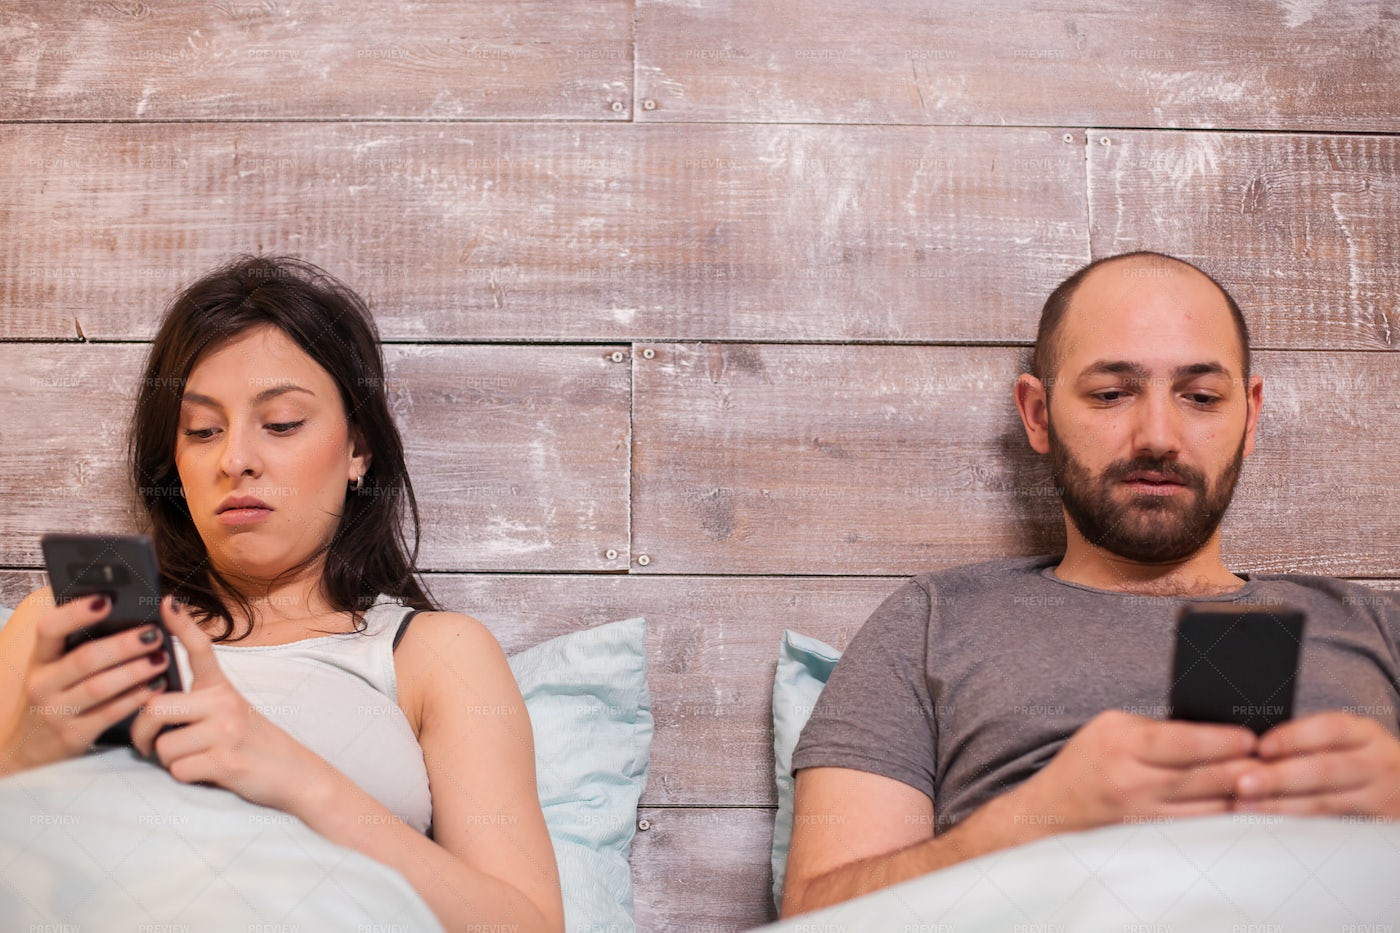 Using Smartphone In Bed: Stock Photos